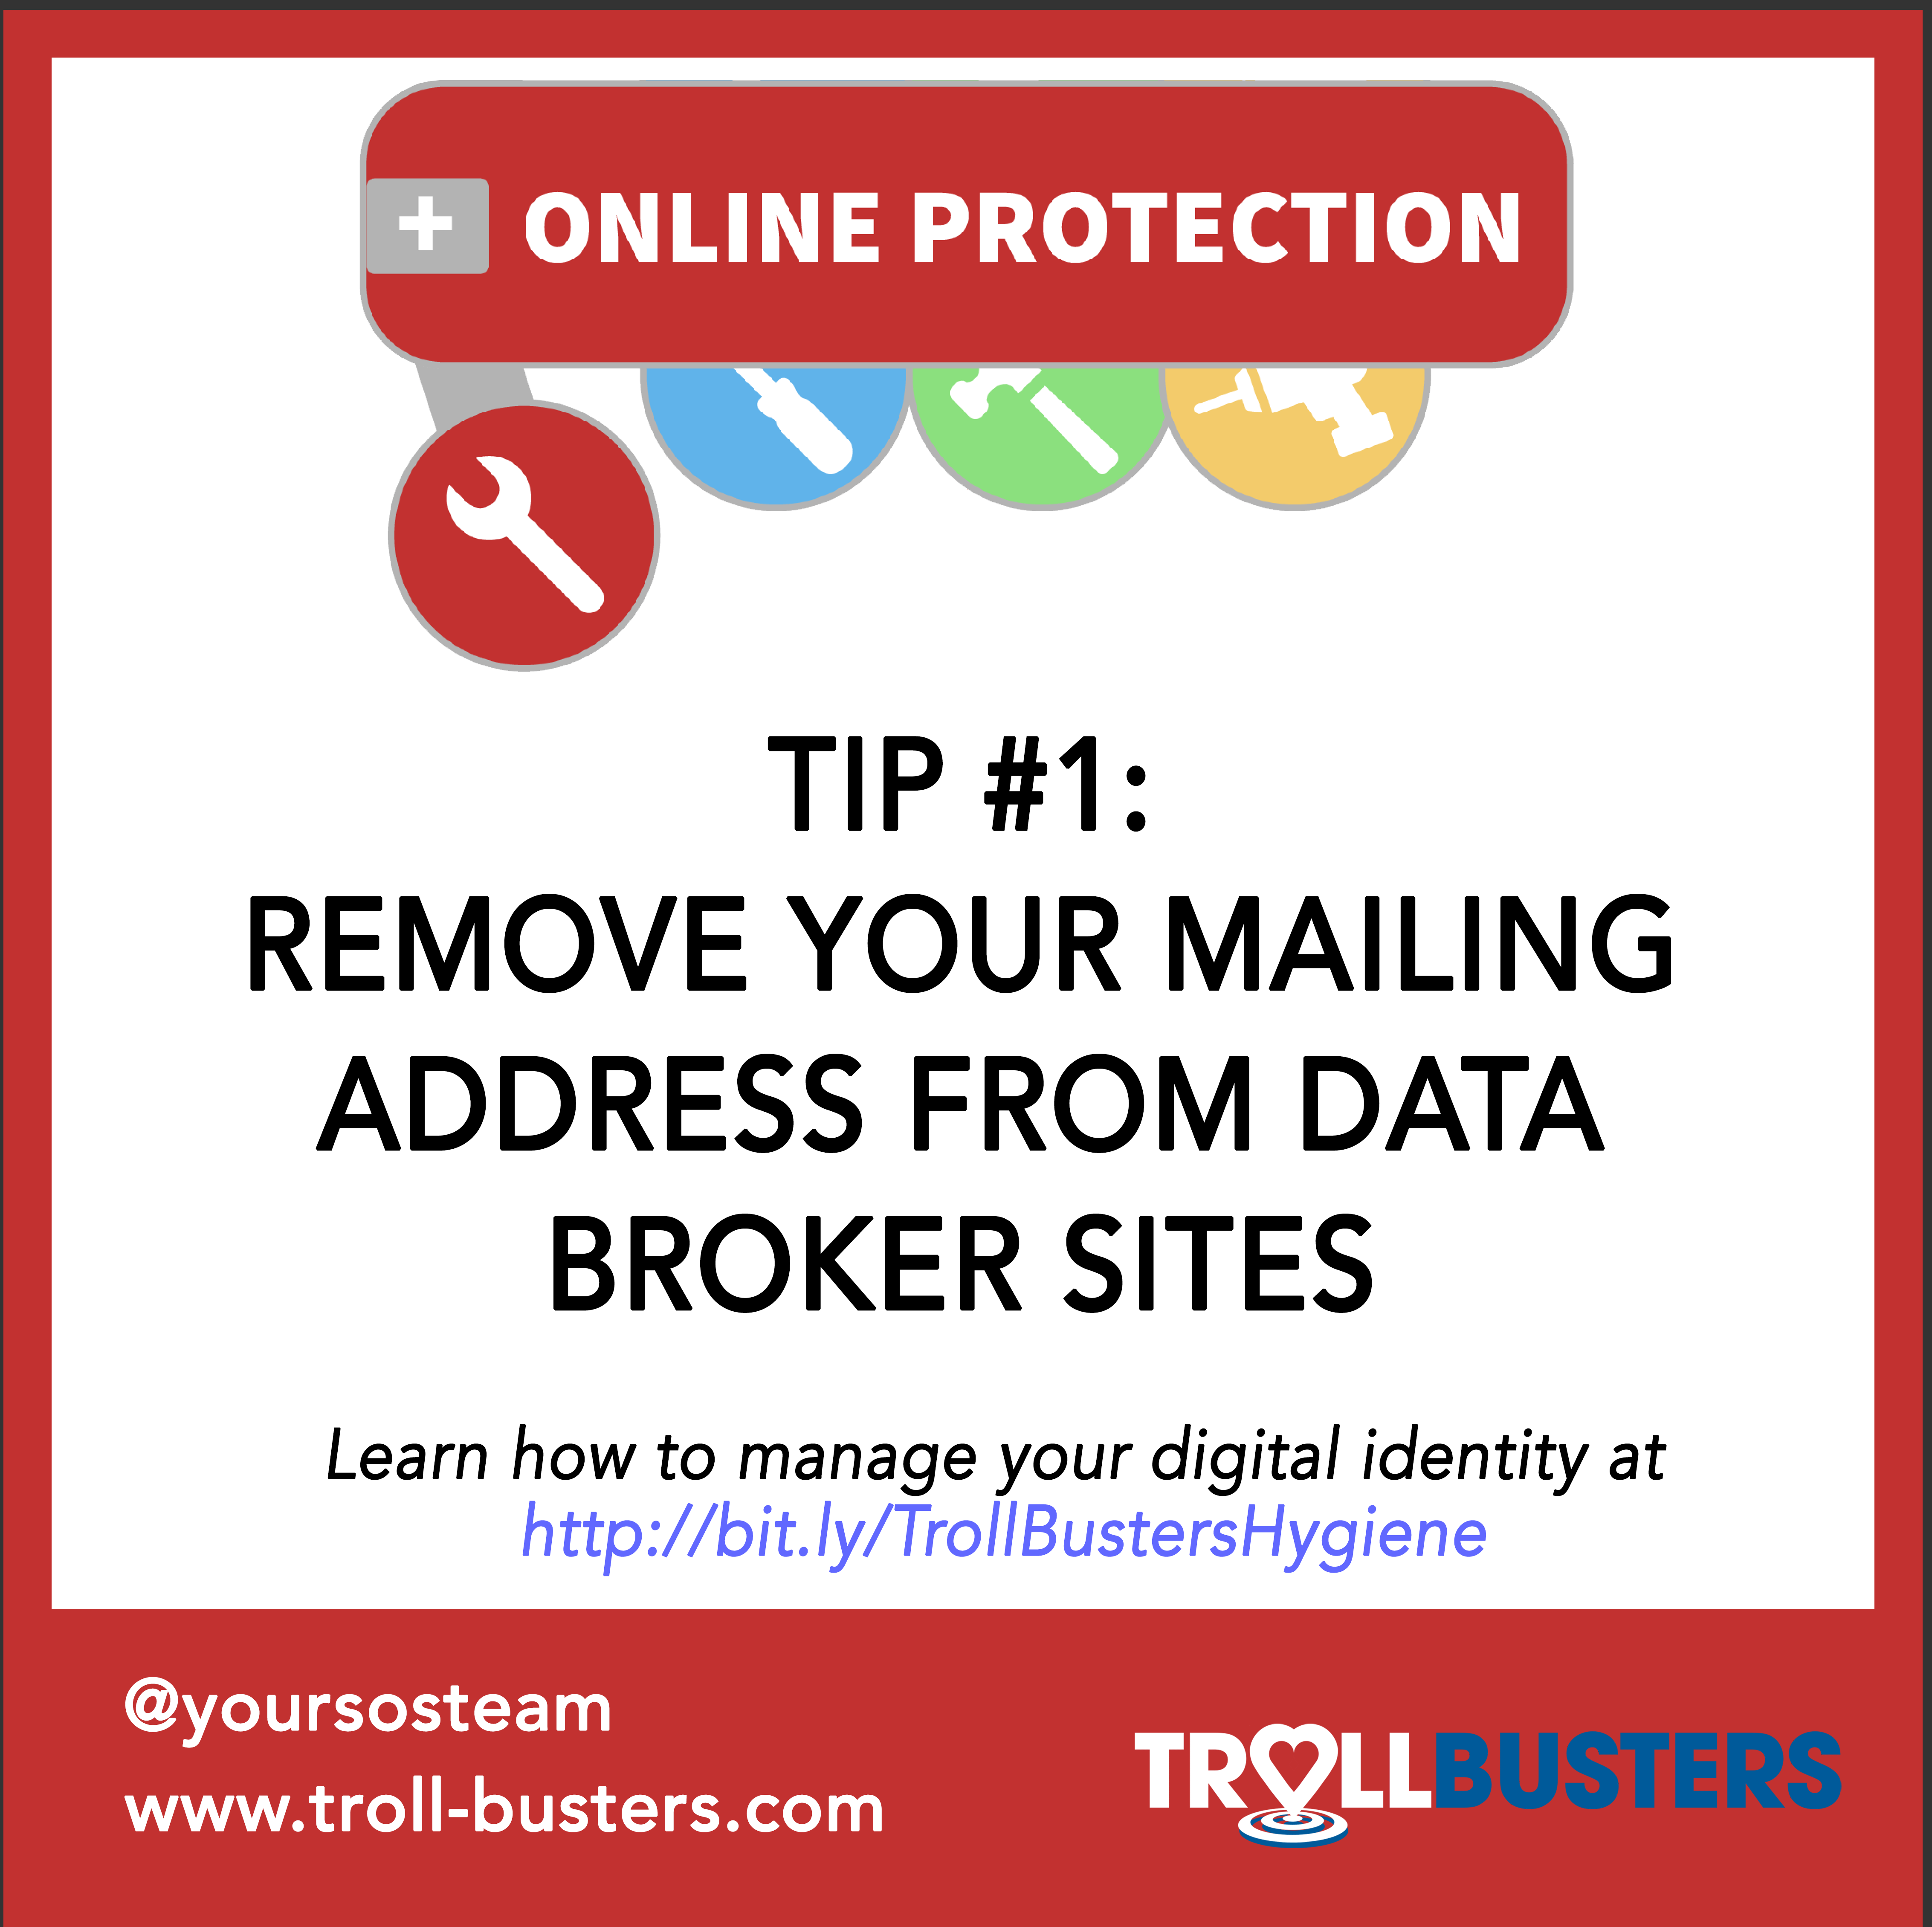 Remove your mailing address from data broker sites